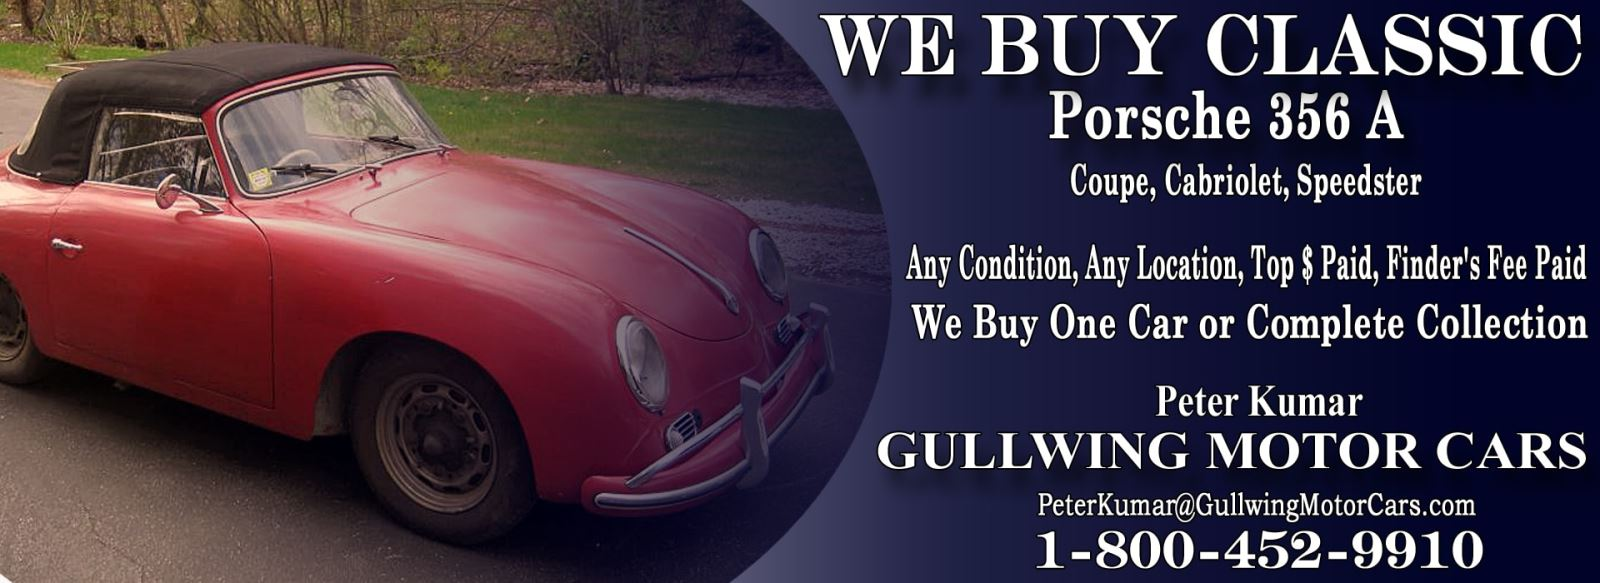 Classic Porsche 356 A for sale, we buy vintage Porsche 356 A. Call Peter Kumar. Gullwing Motor